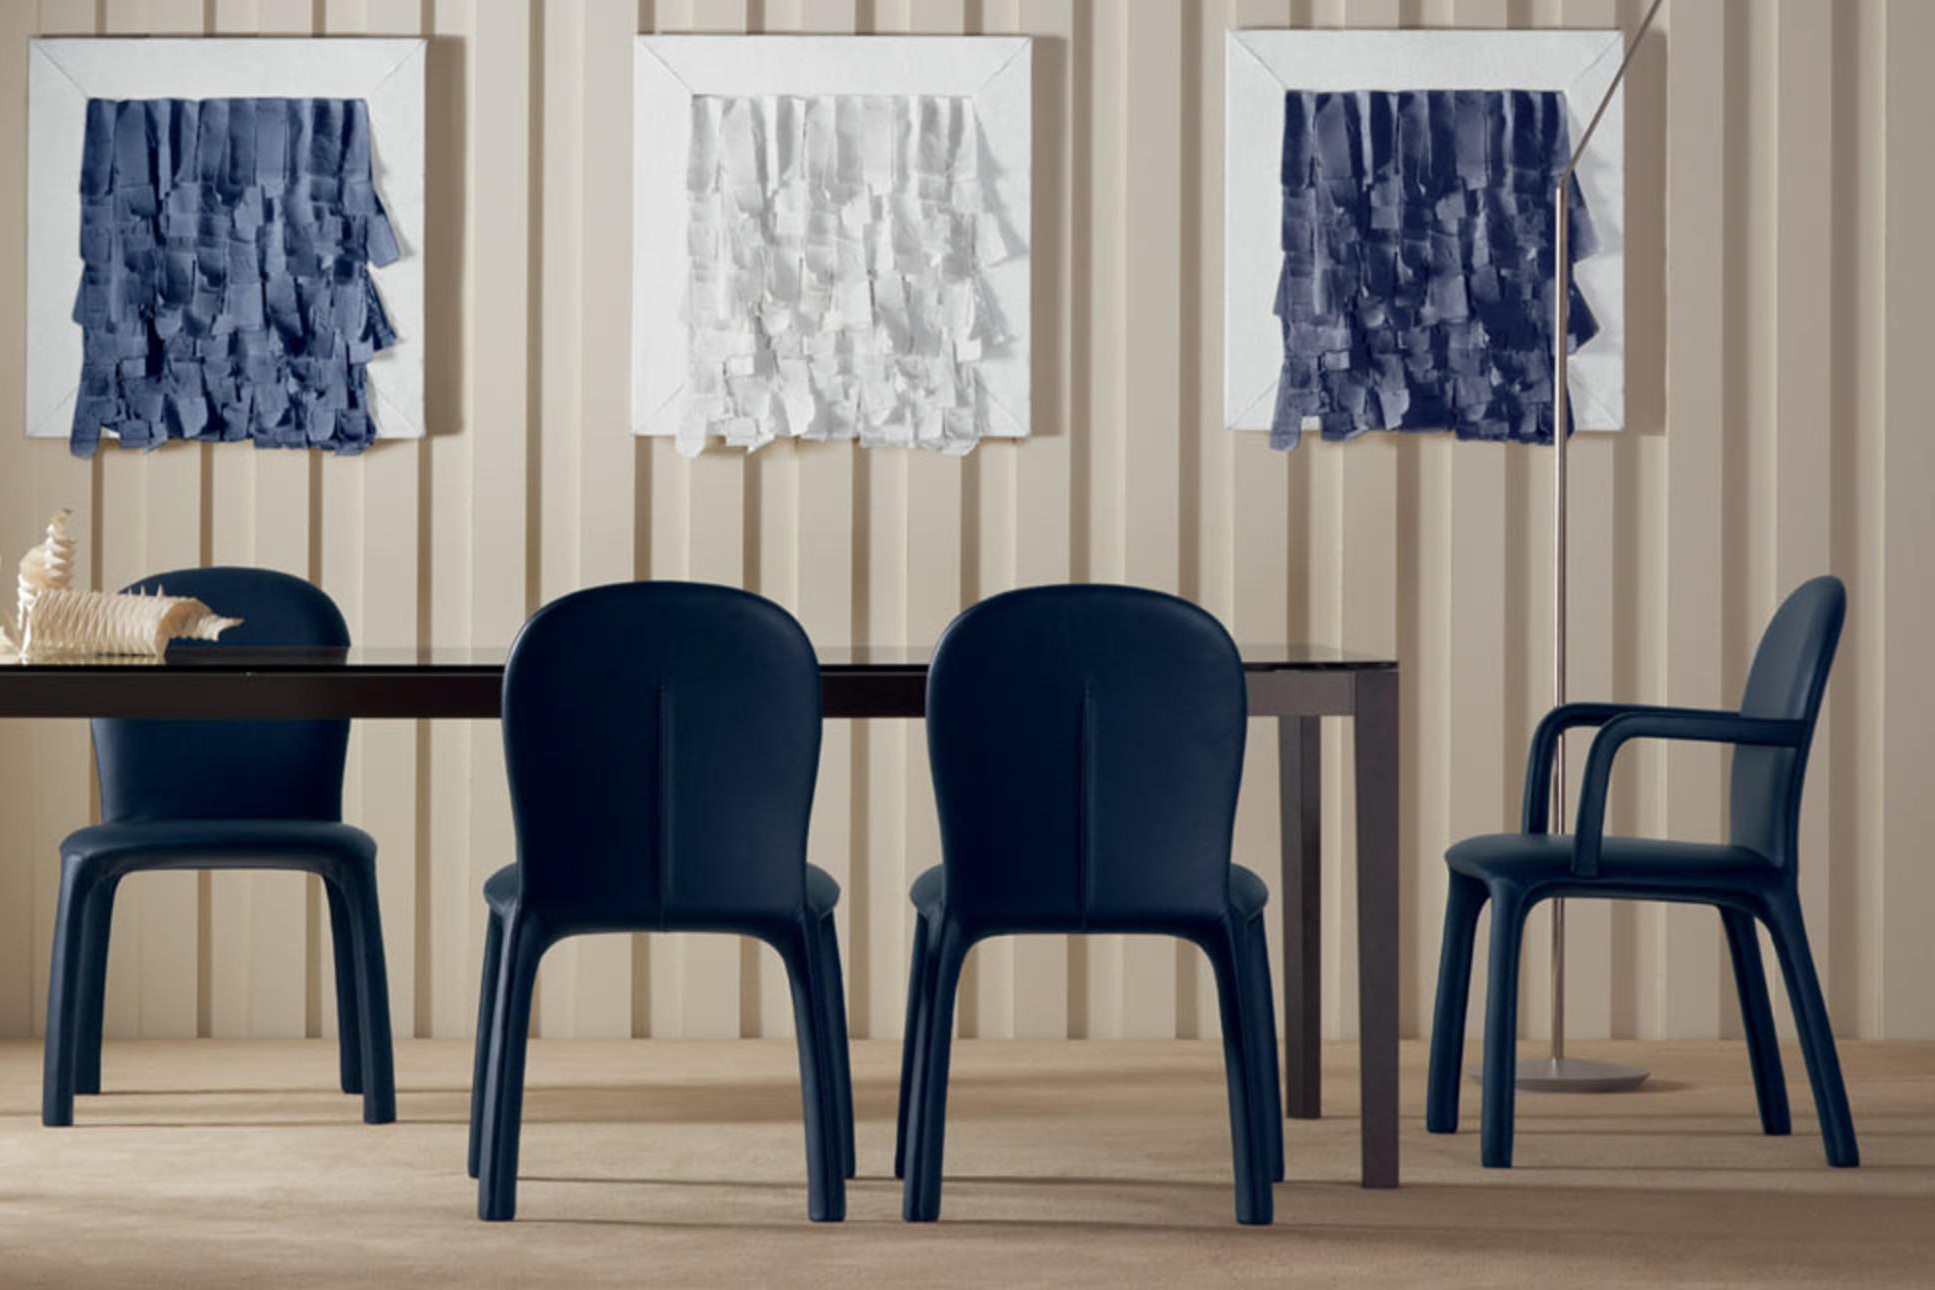 Excellence-Magazine_Luxury_Top-10-Modern-Dining-Chairs-to-Place-around-Any-Dining-Table-by-Poltrona-Frau